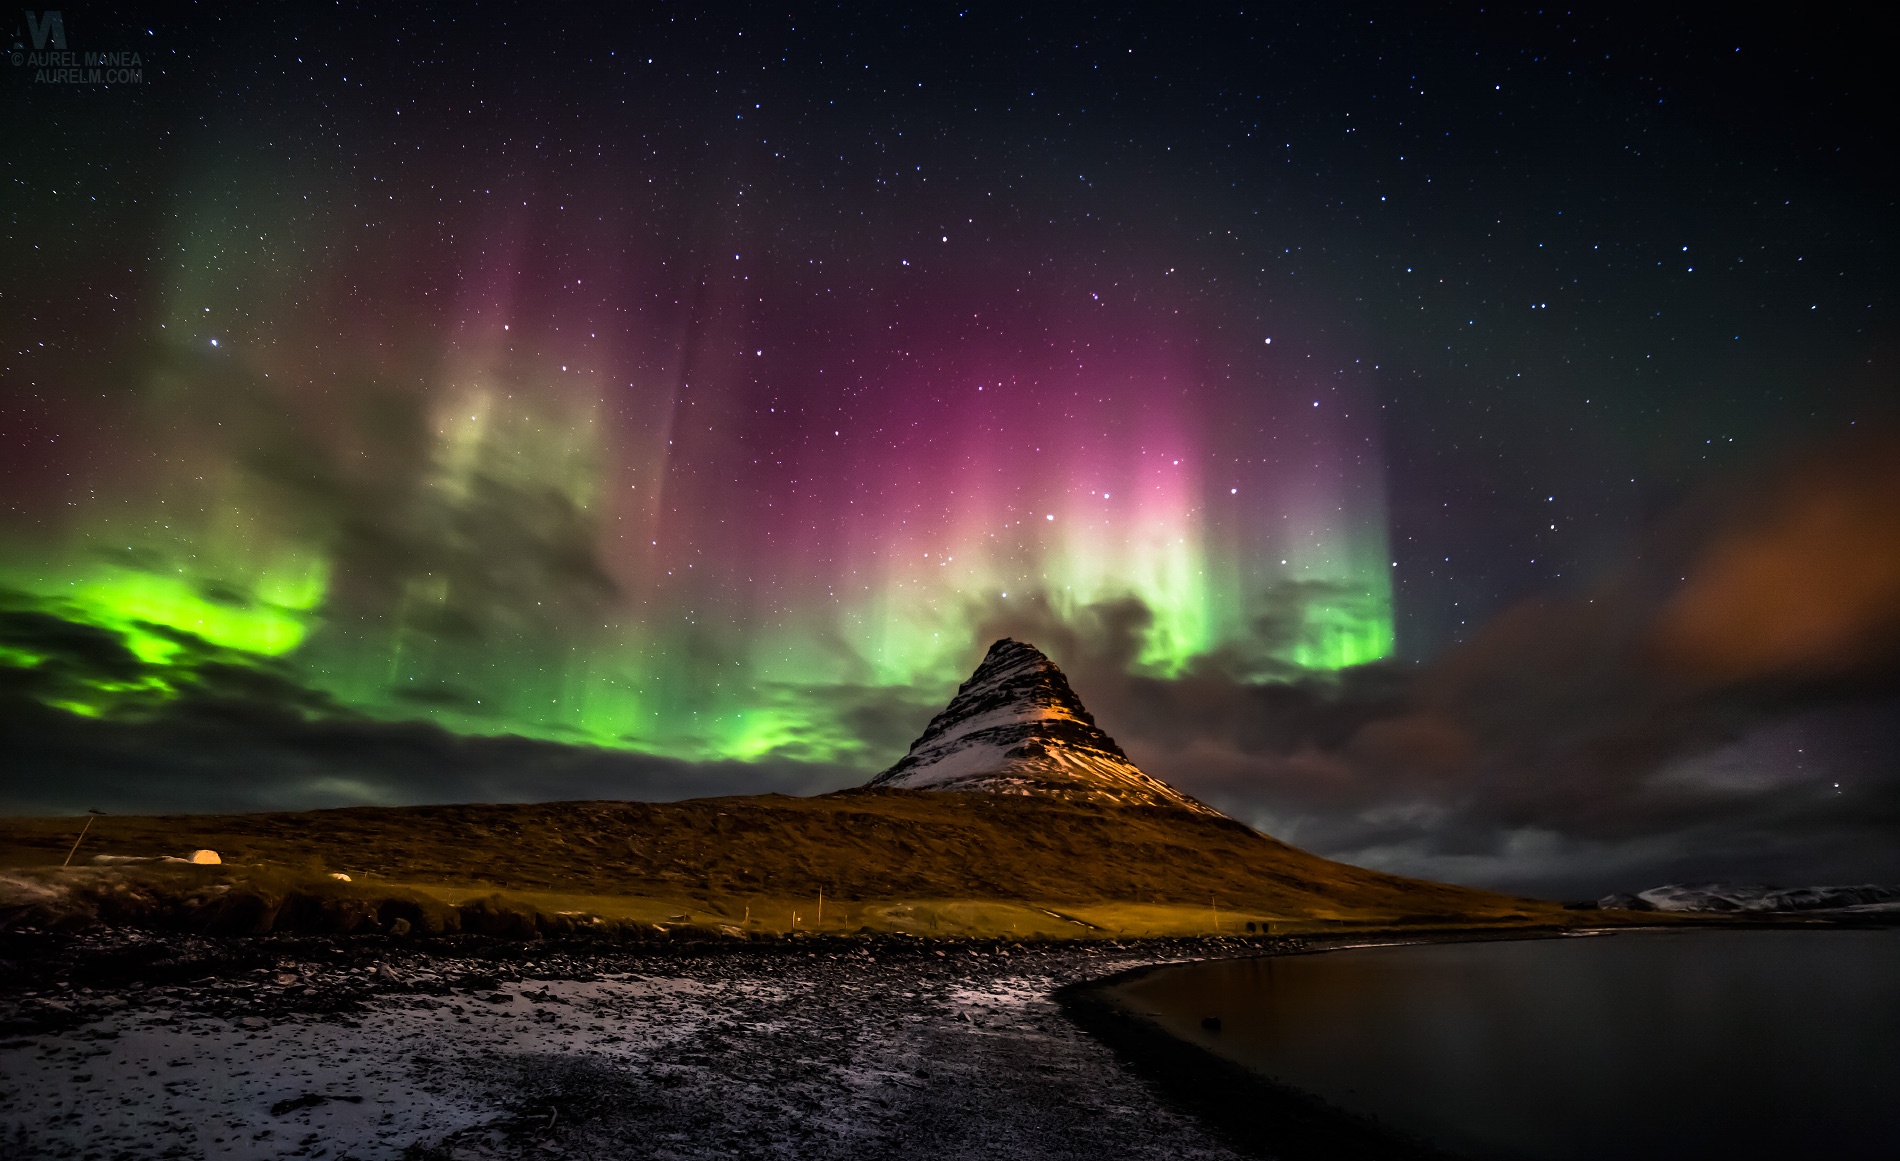 62. Aurora in Northern Iceland